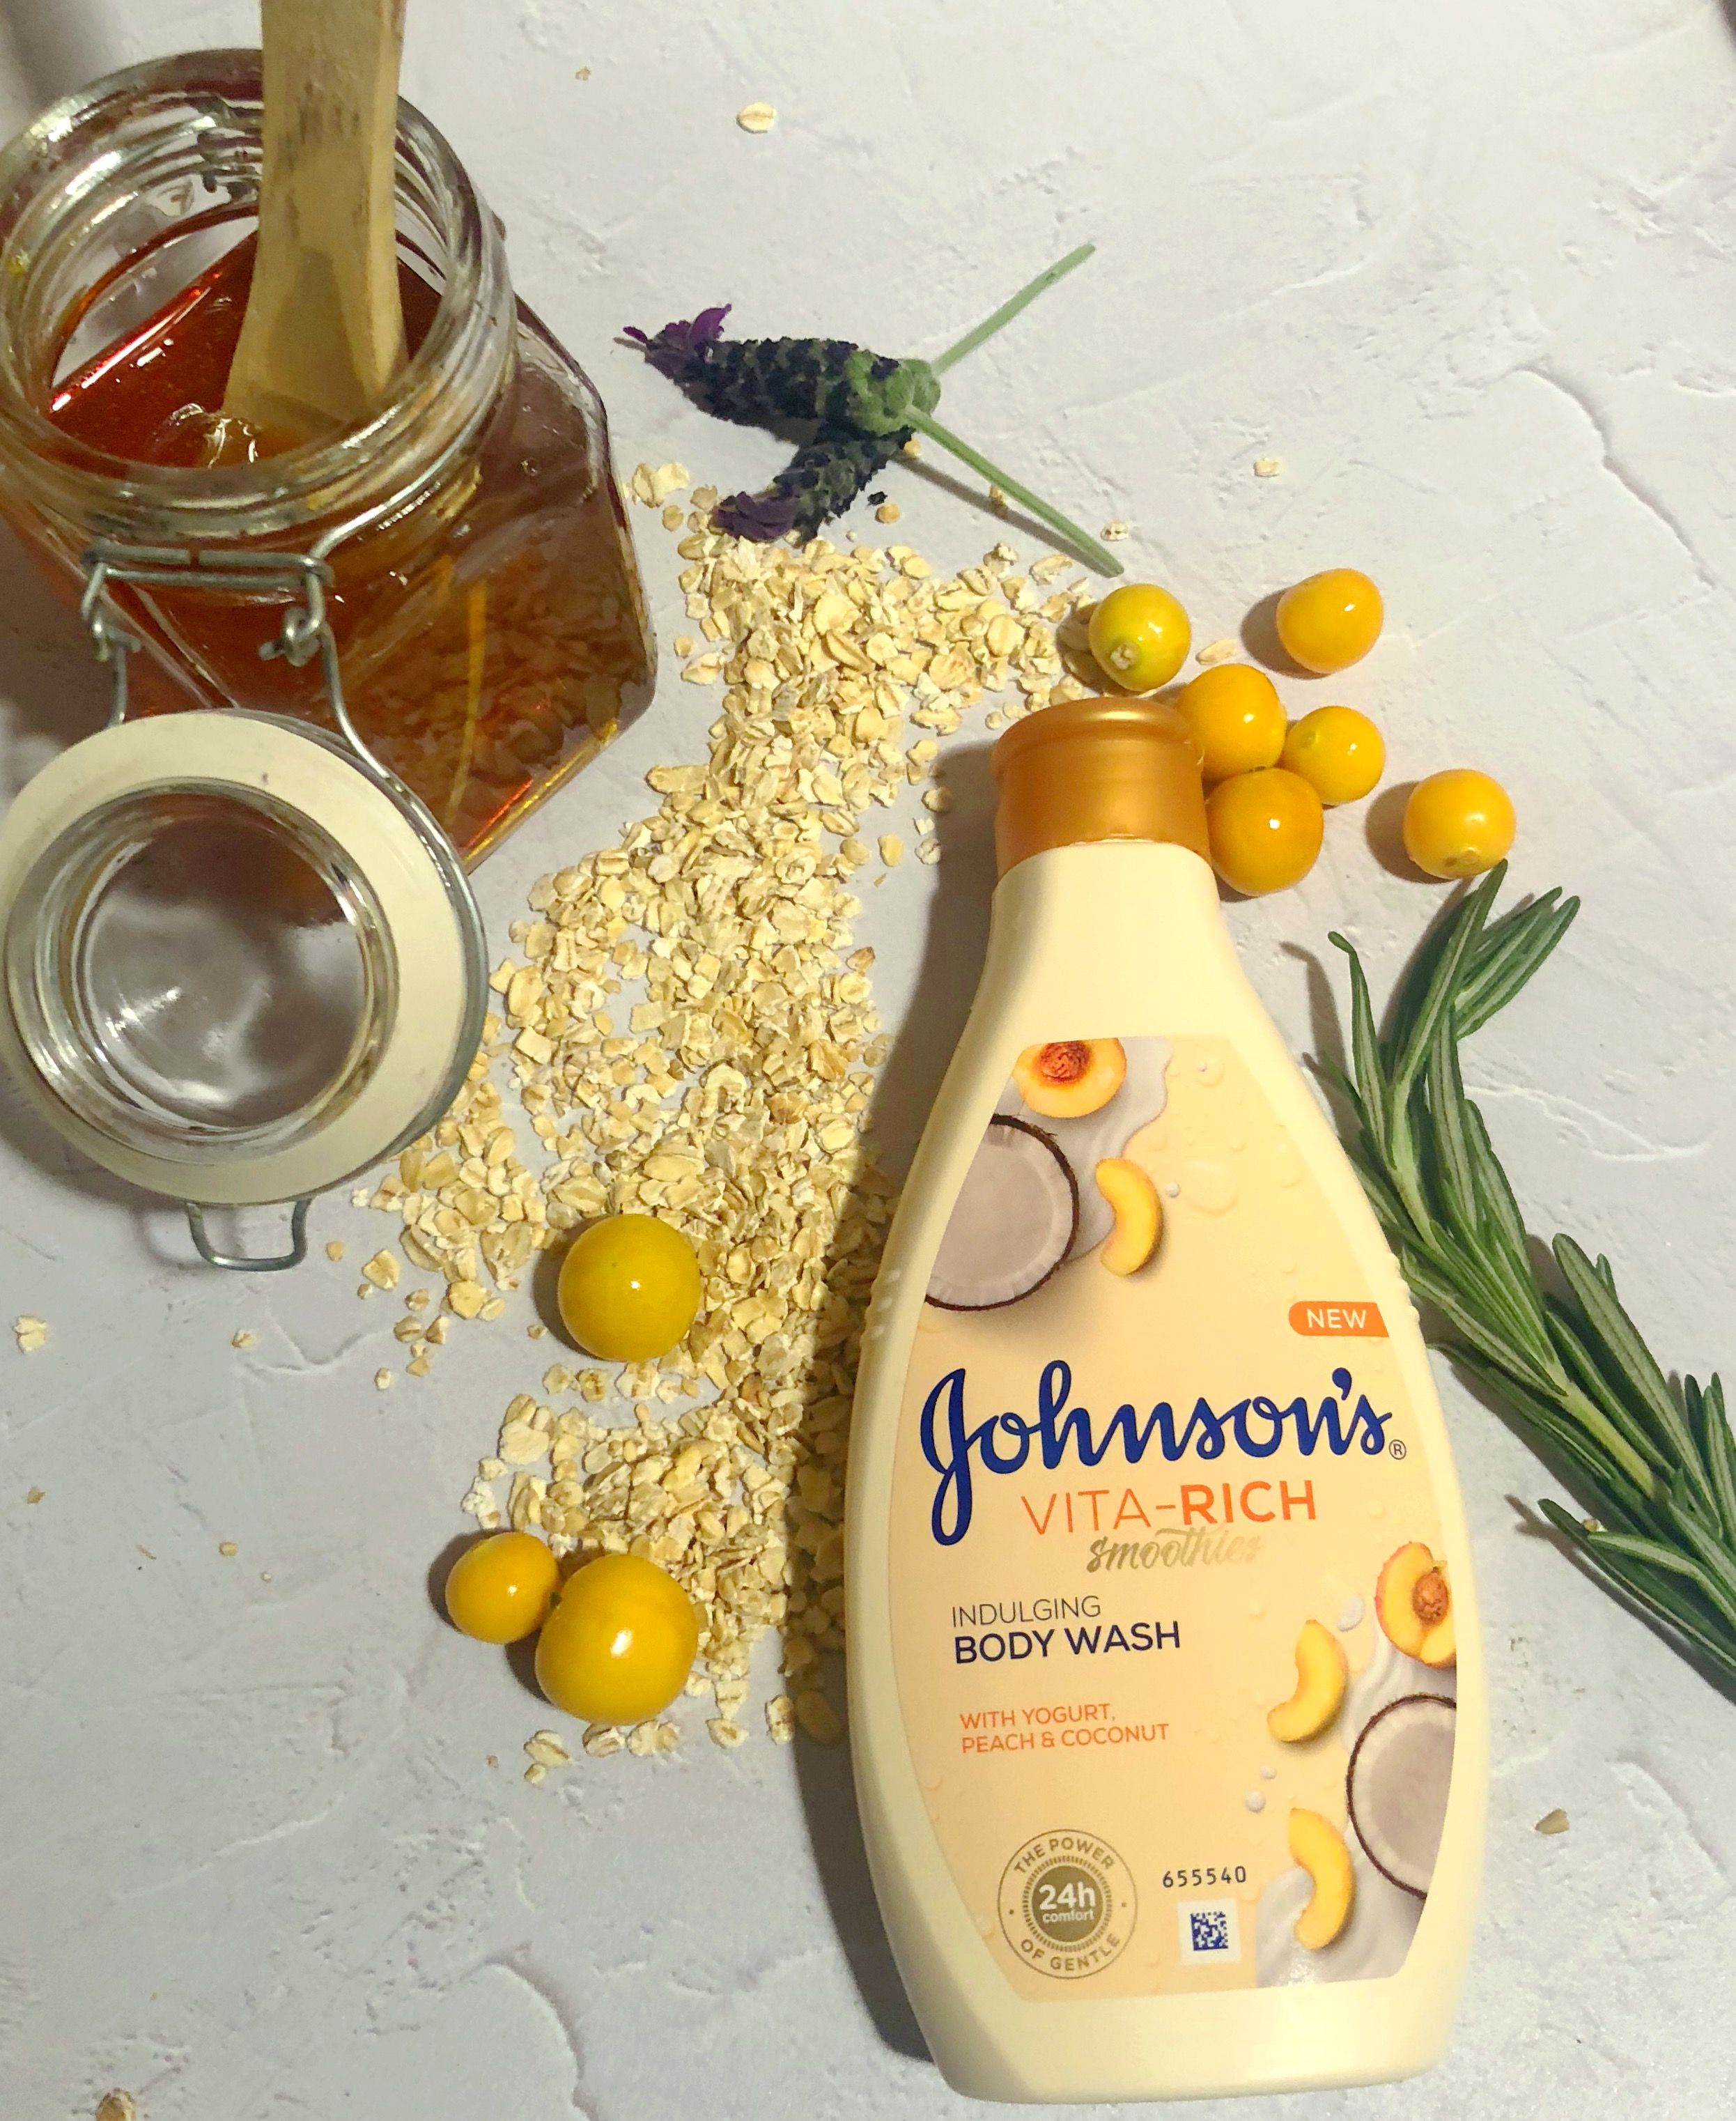 Johnsons Vita-Rich Smoothie Body